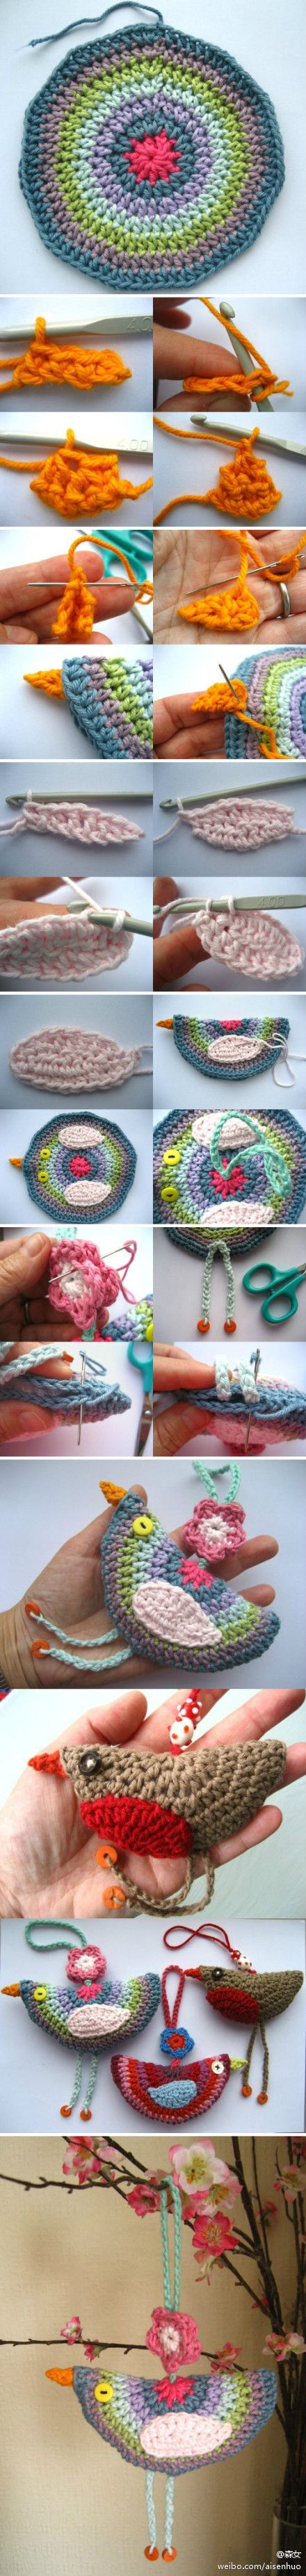 Crochet Bird - Photo Tutorial